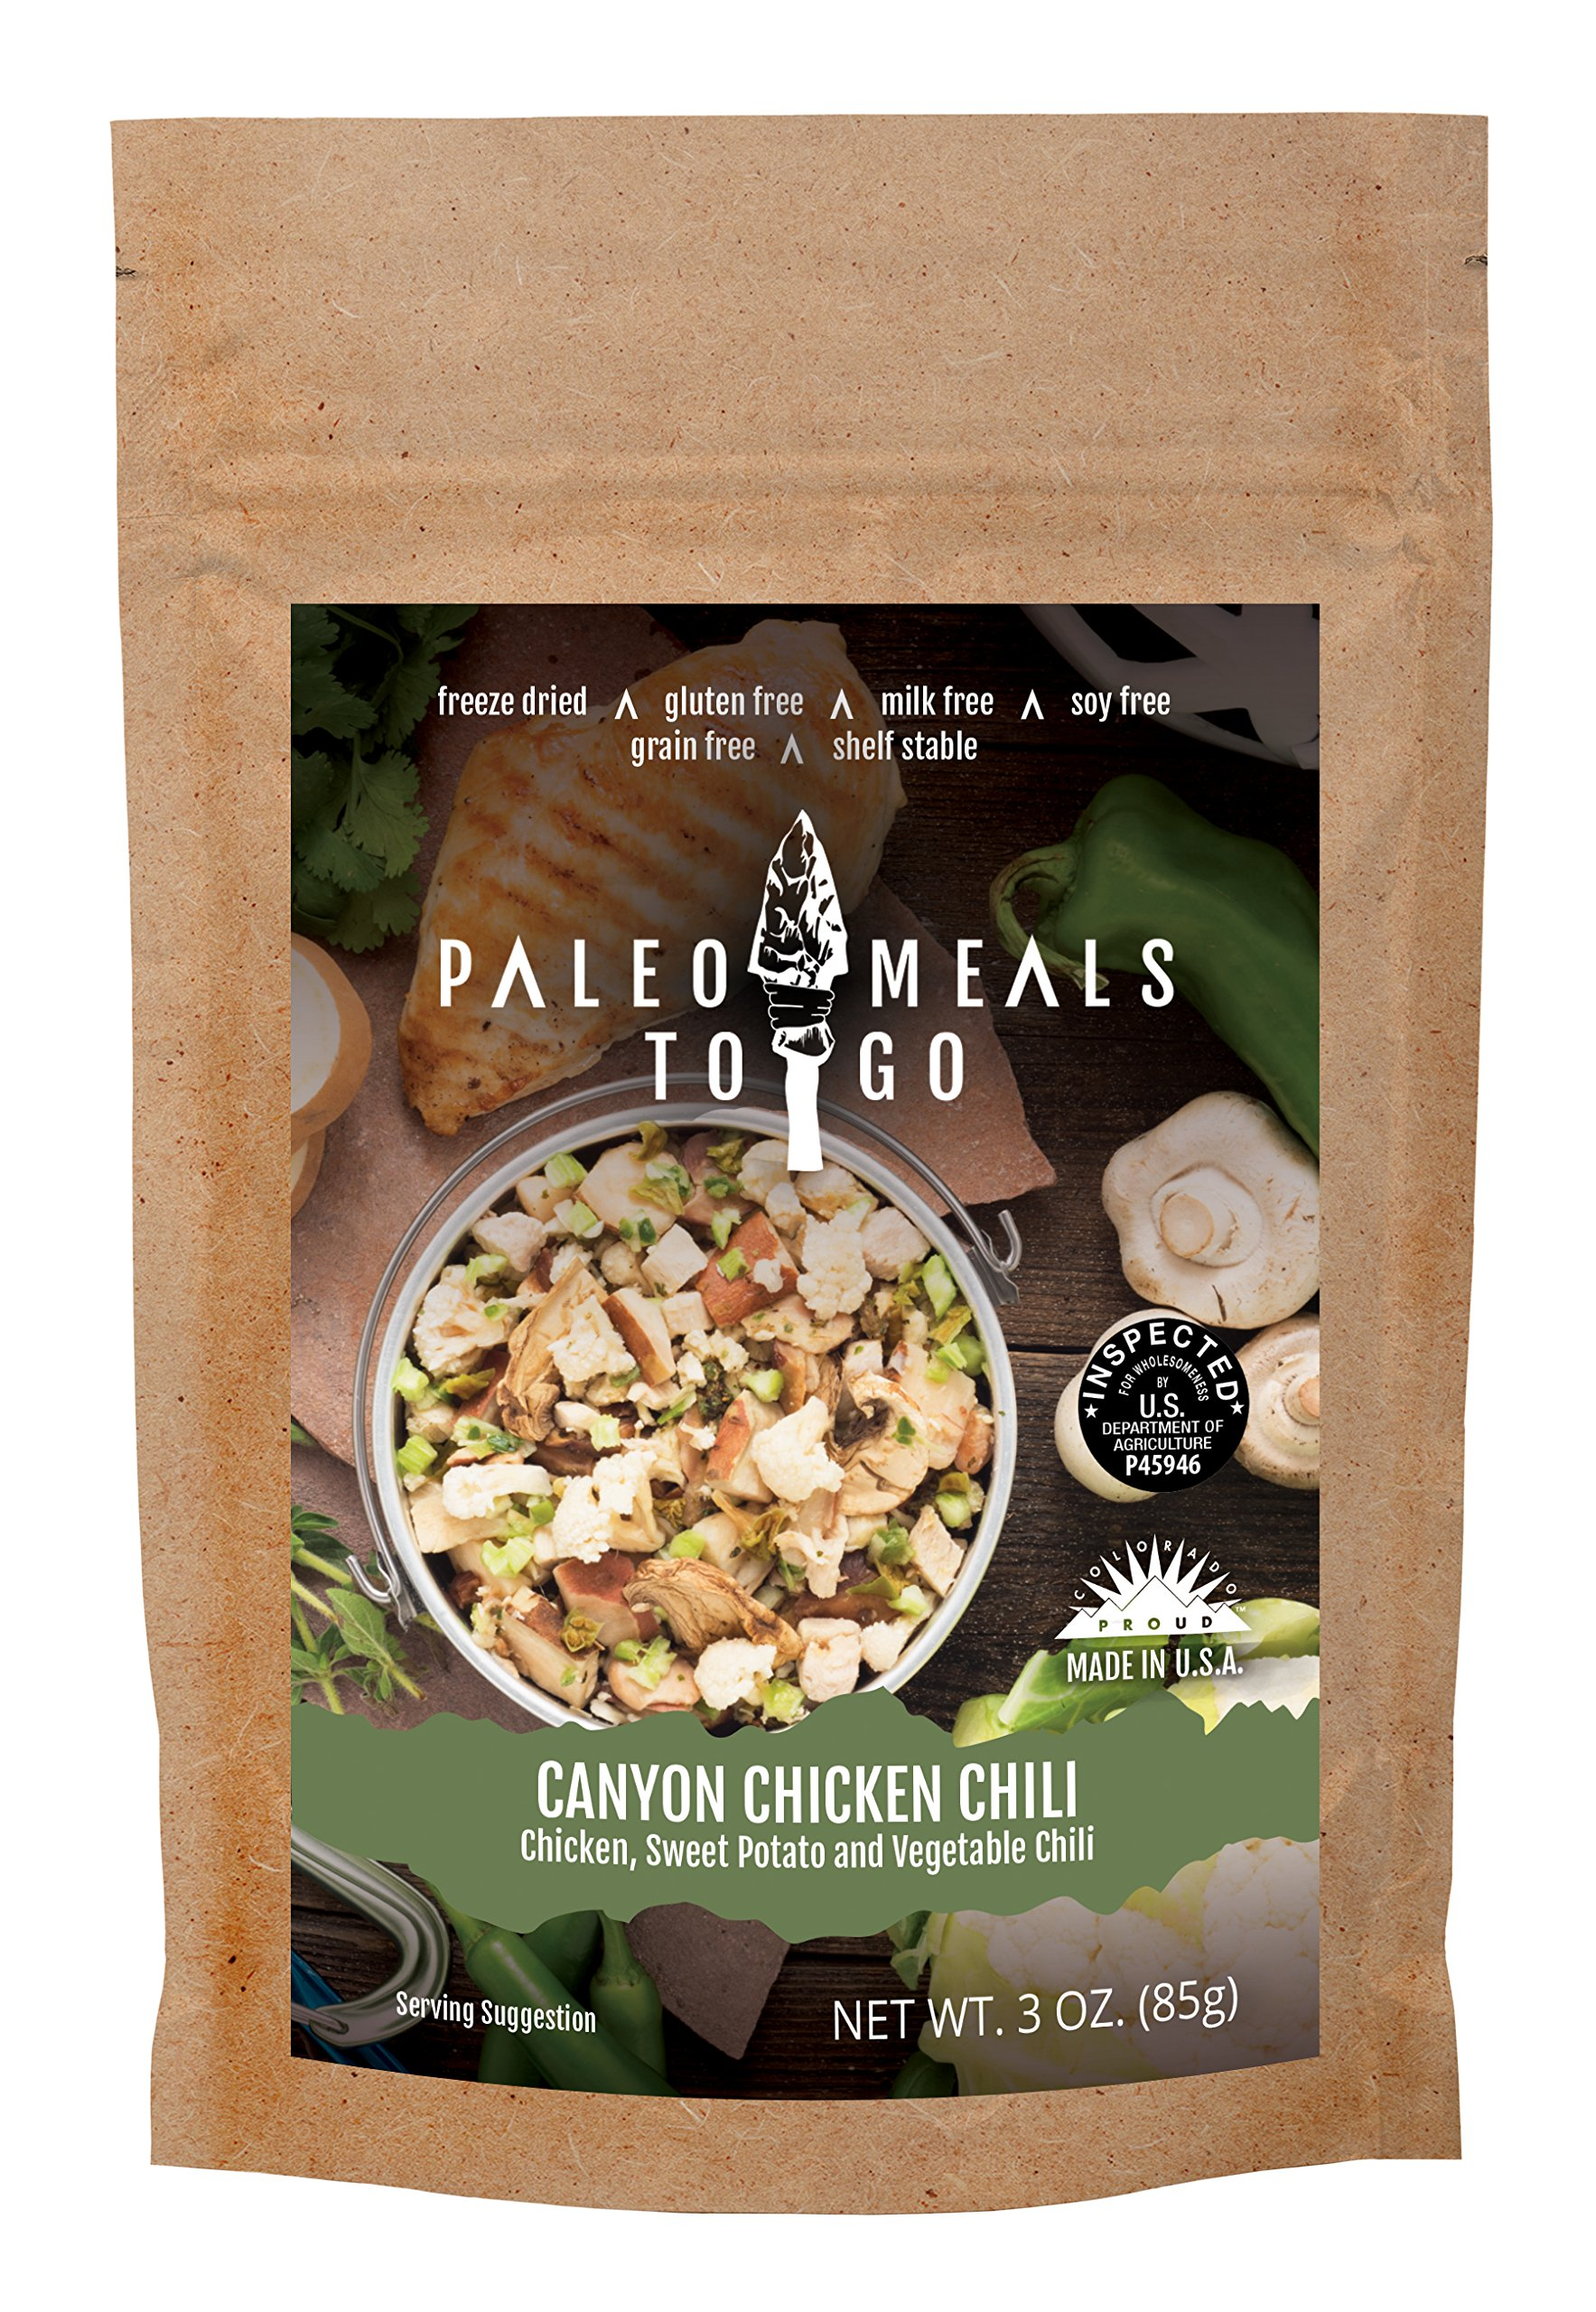 Wild Zora Canyon Chicken Chili Freeze Dried Gluten Free Paleo Meal for Backpacking and Camping by Wild Zora